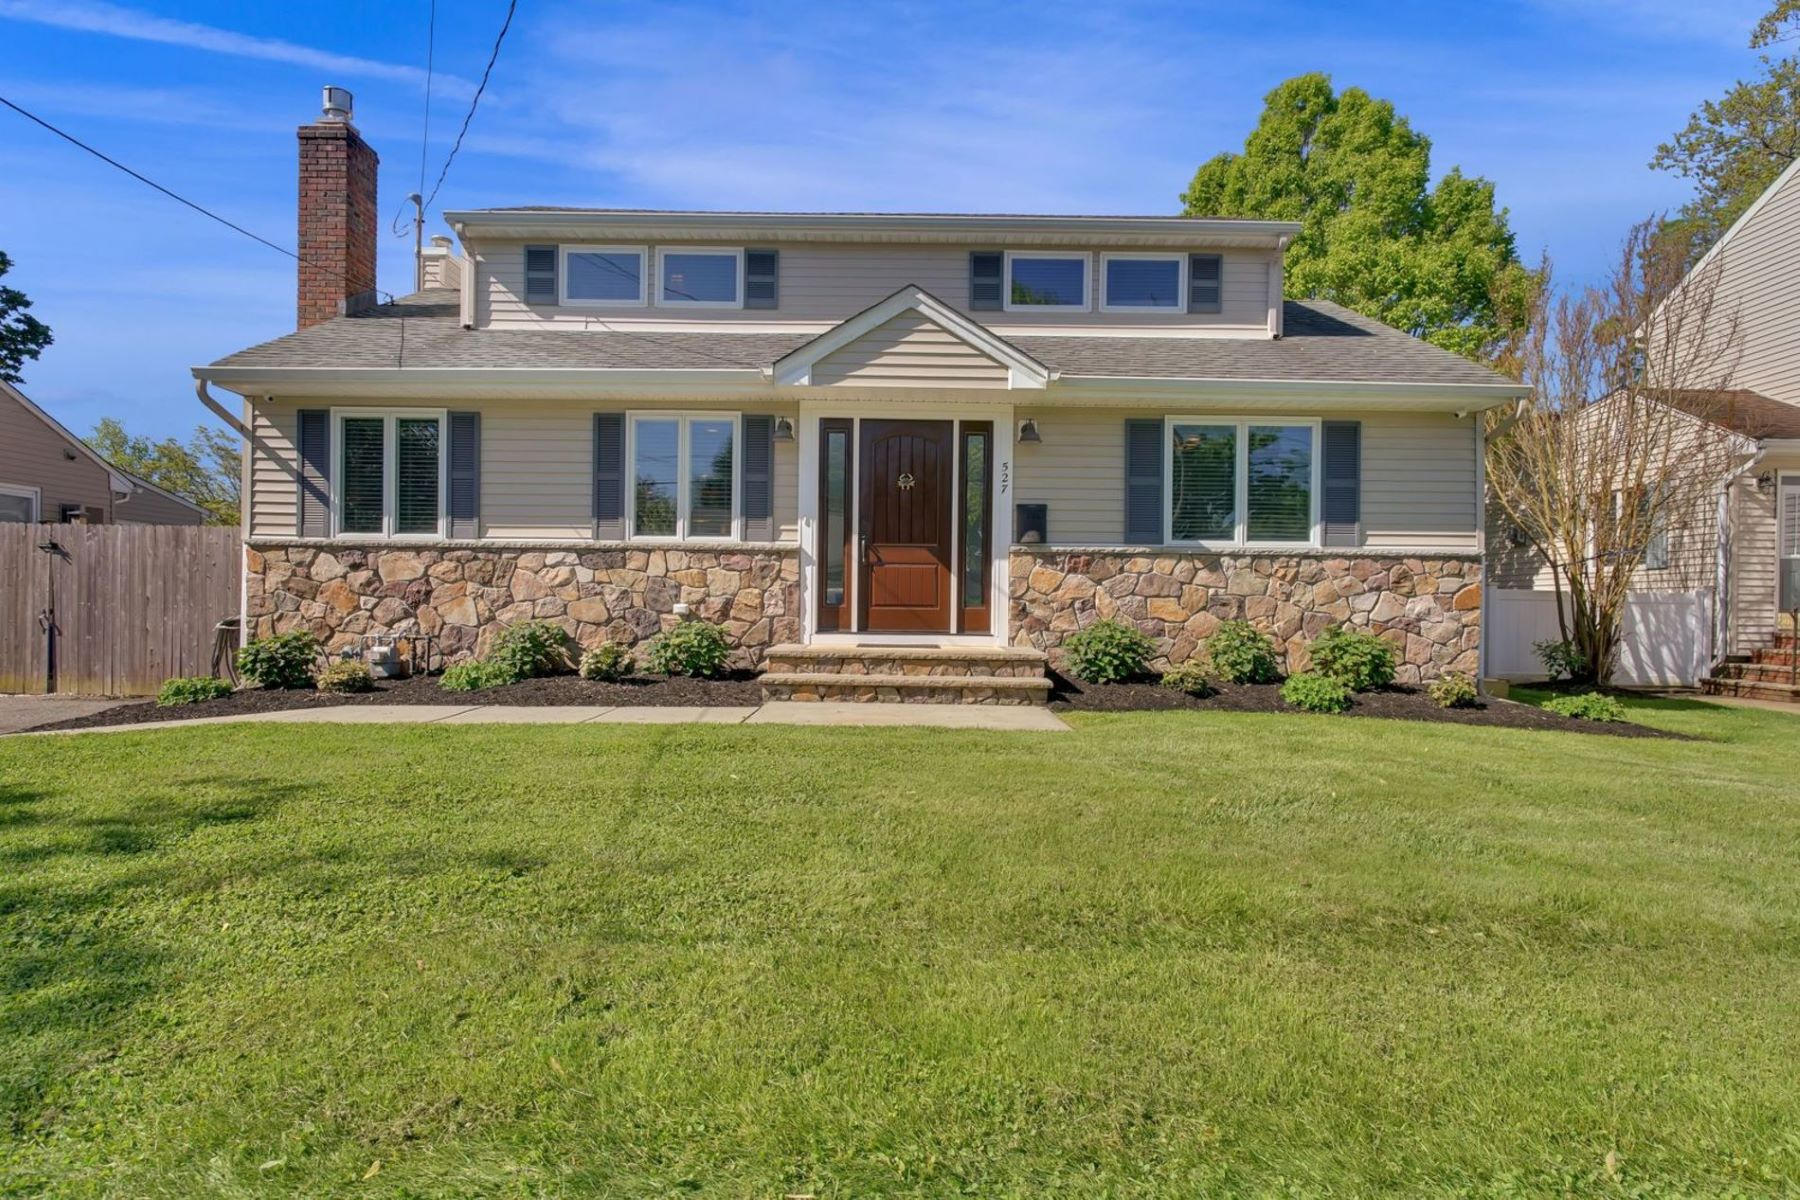 Single Family Homes for Sale at Exceptional Styled Seashore Cape Style Home 527 Borrie Avenue Brielle, New Jersey 08730 United States